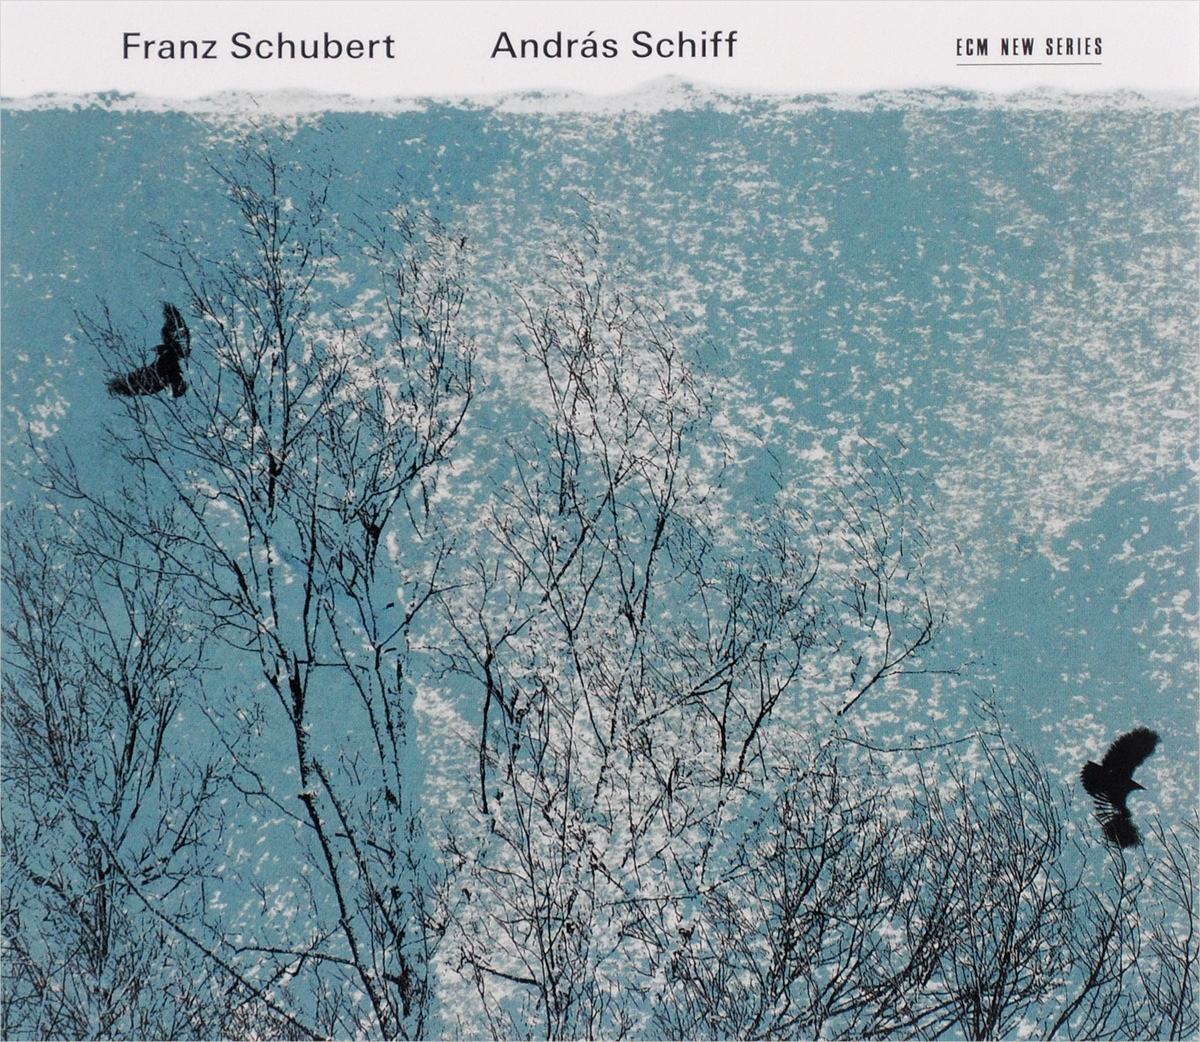 Андрас Шифф Andras Schiff. Franz Schubert (2 CD) free shipping original cnc lathe pclnr2525m12 pclnl2525m12 internal turning tool holder indexable cutting tool for cnmg